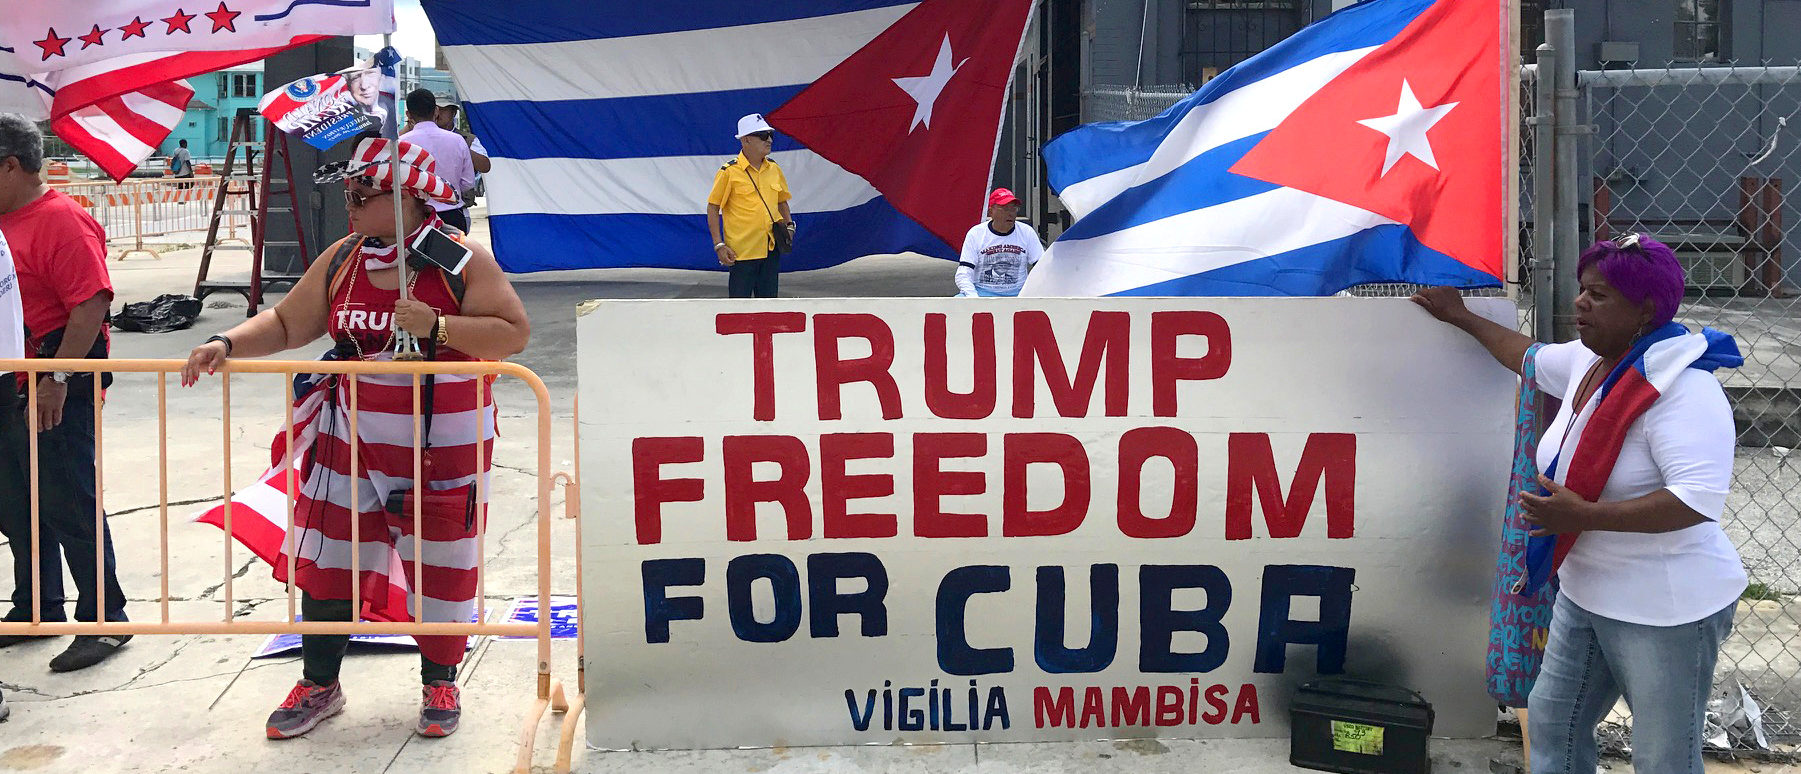 the goal of the cuban embargo The goal of the embargo, they said, had been to change cuba but since cuba had not changed, the embargo was a futile policy and should be withdrawn it was a sleight-of-hand, with the same party supplying both sides of the argument.